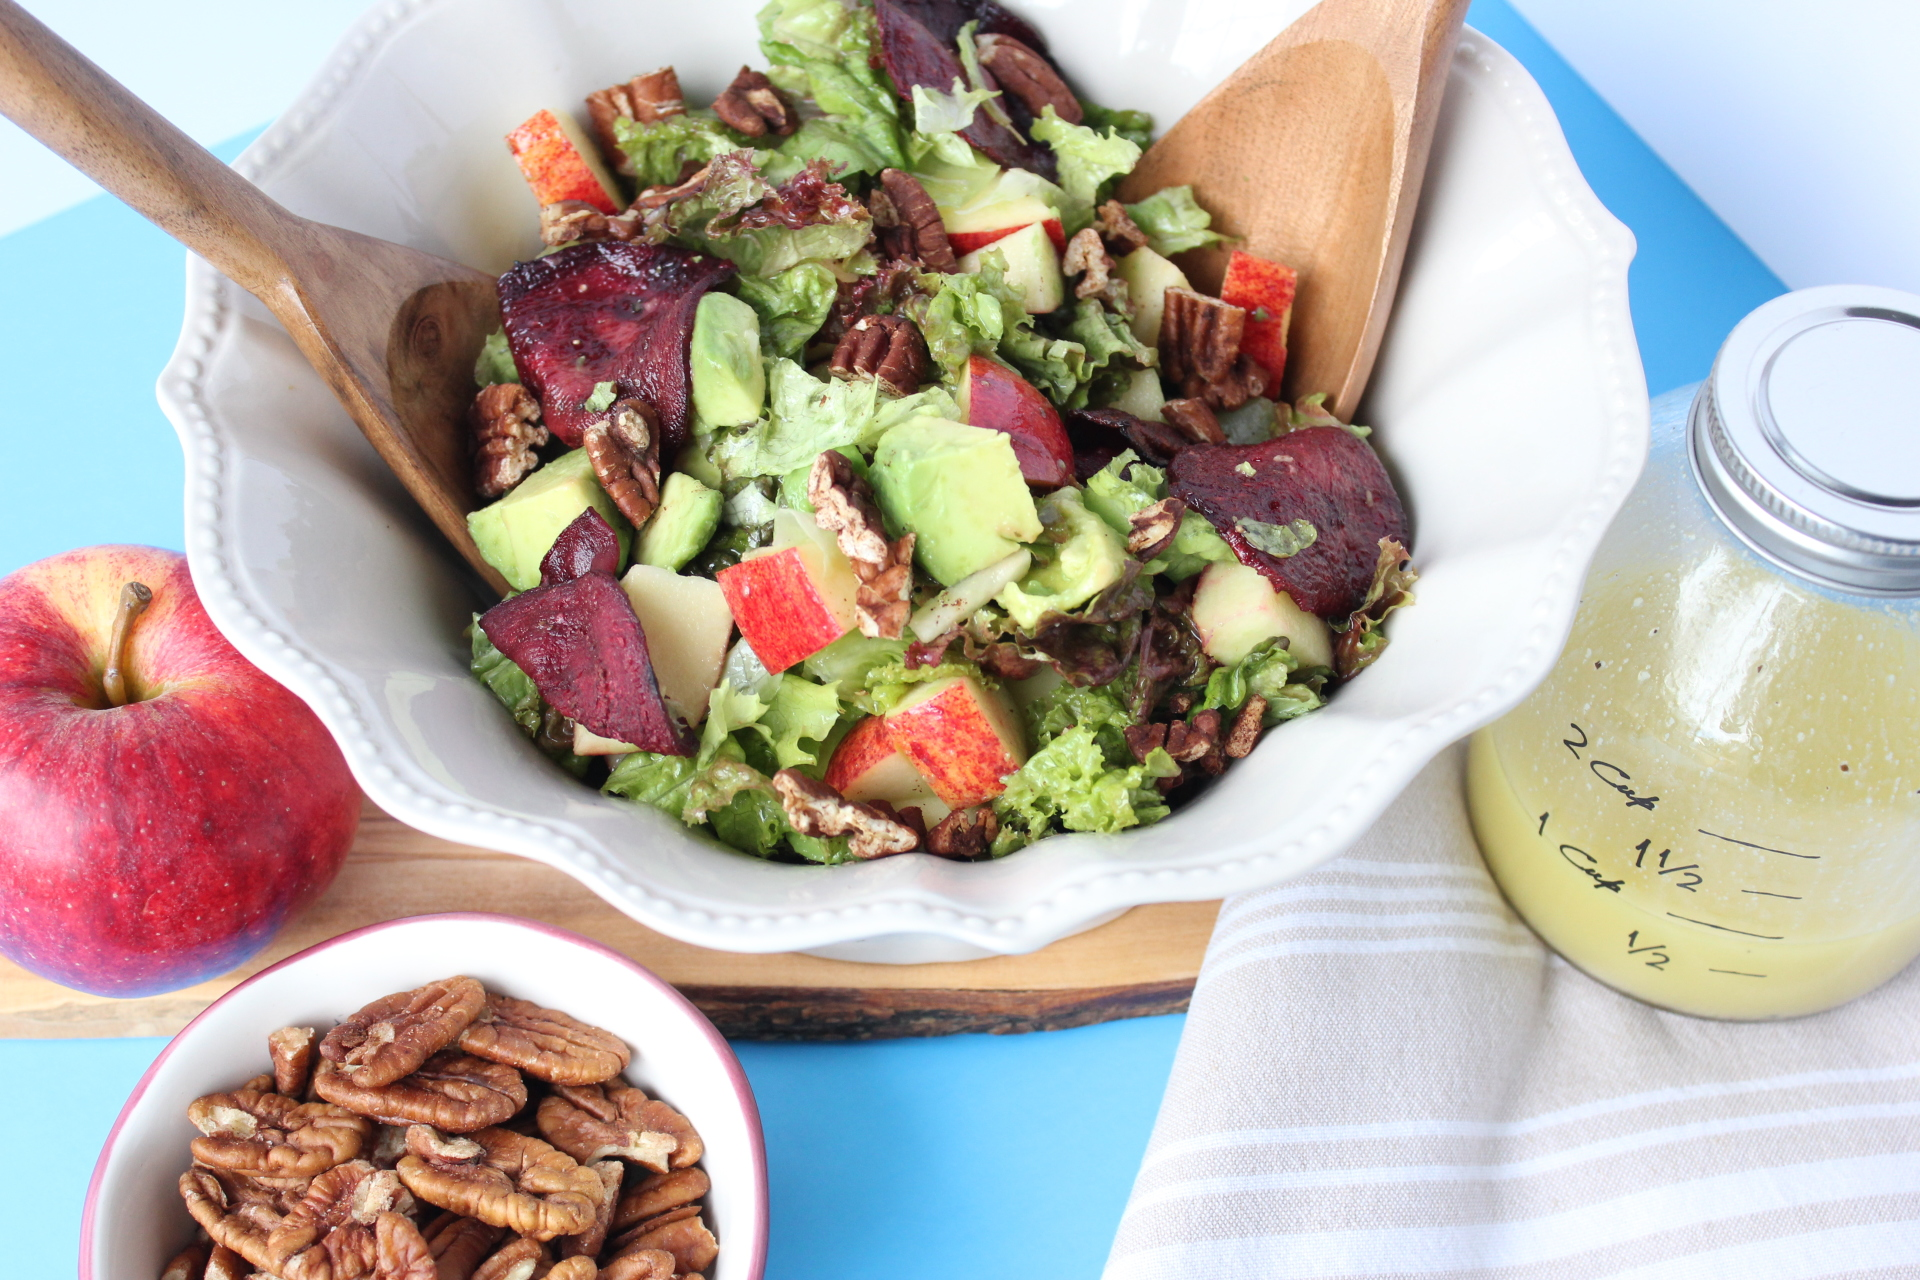 RECIPE: Roasted Beet & Apple Salad, Detoxing 101